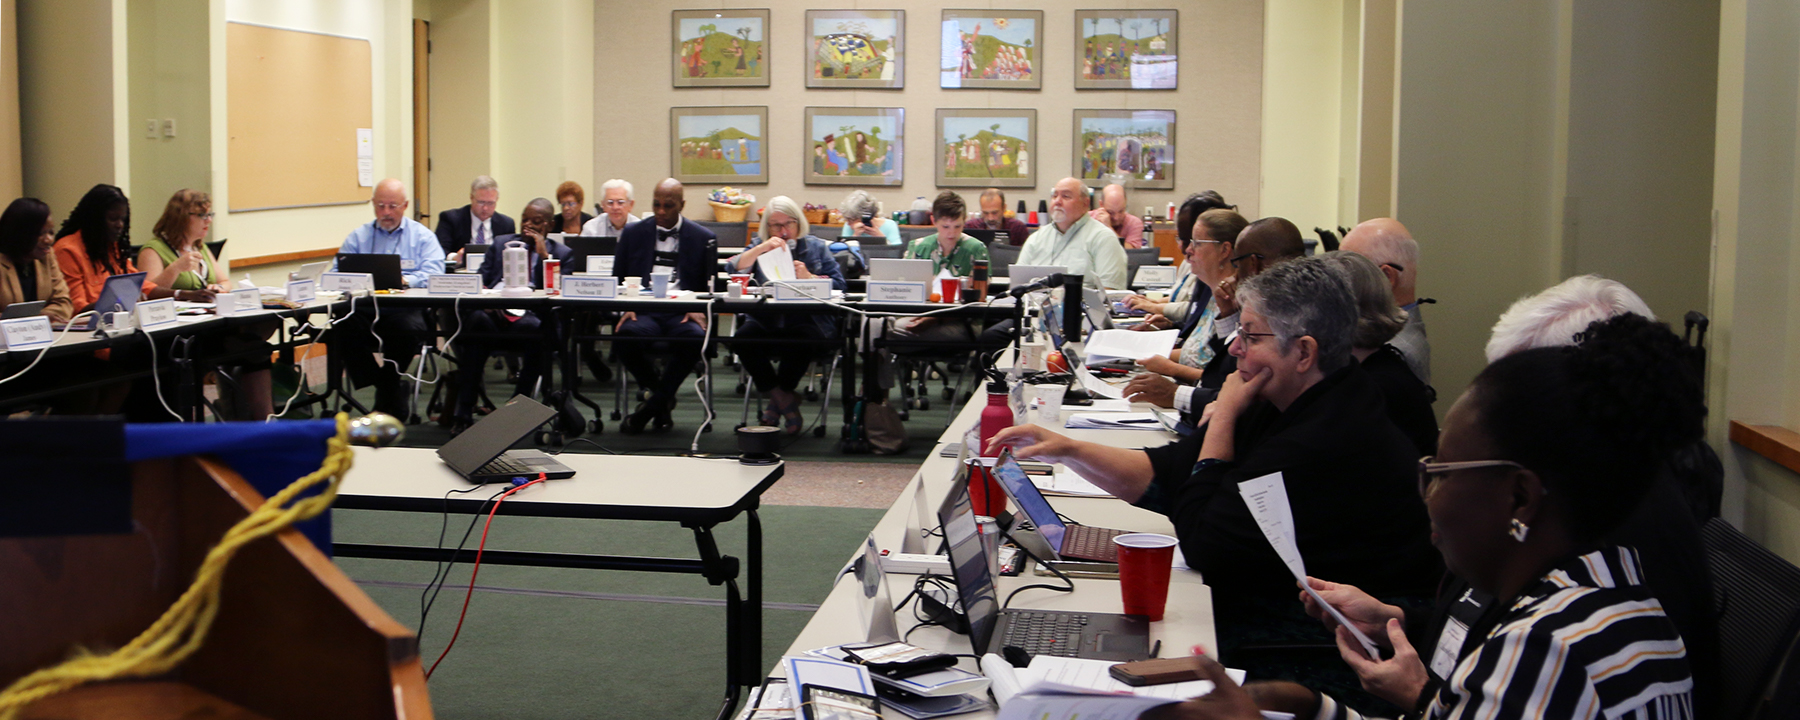 COGA holds its fall meeting at the Presbyterian Center in Louisville. Photo by Randy Hobson.